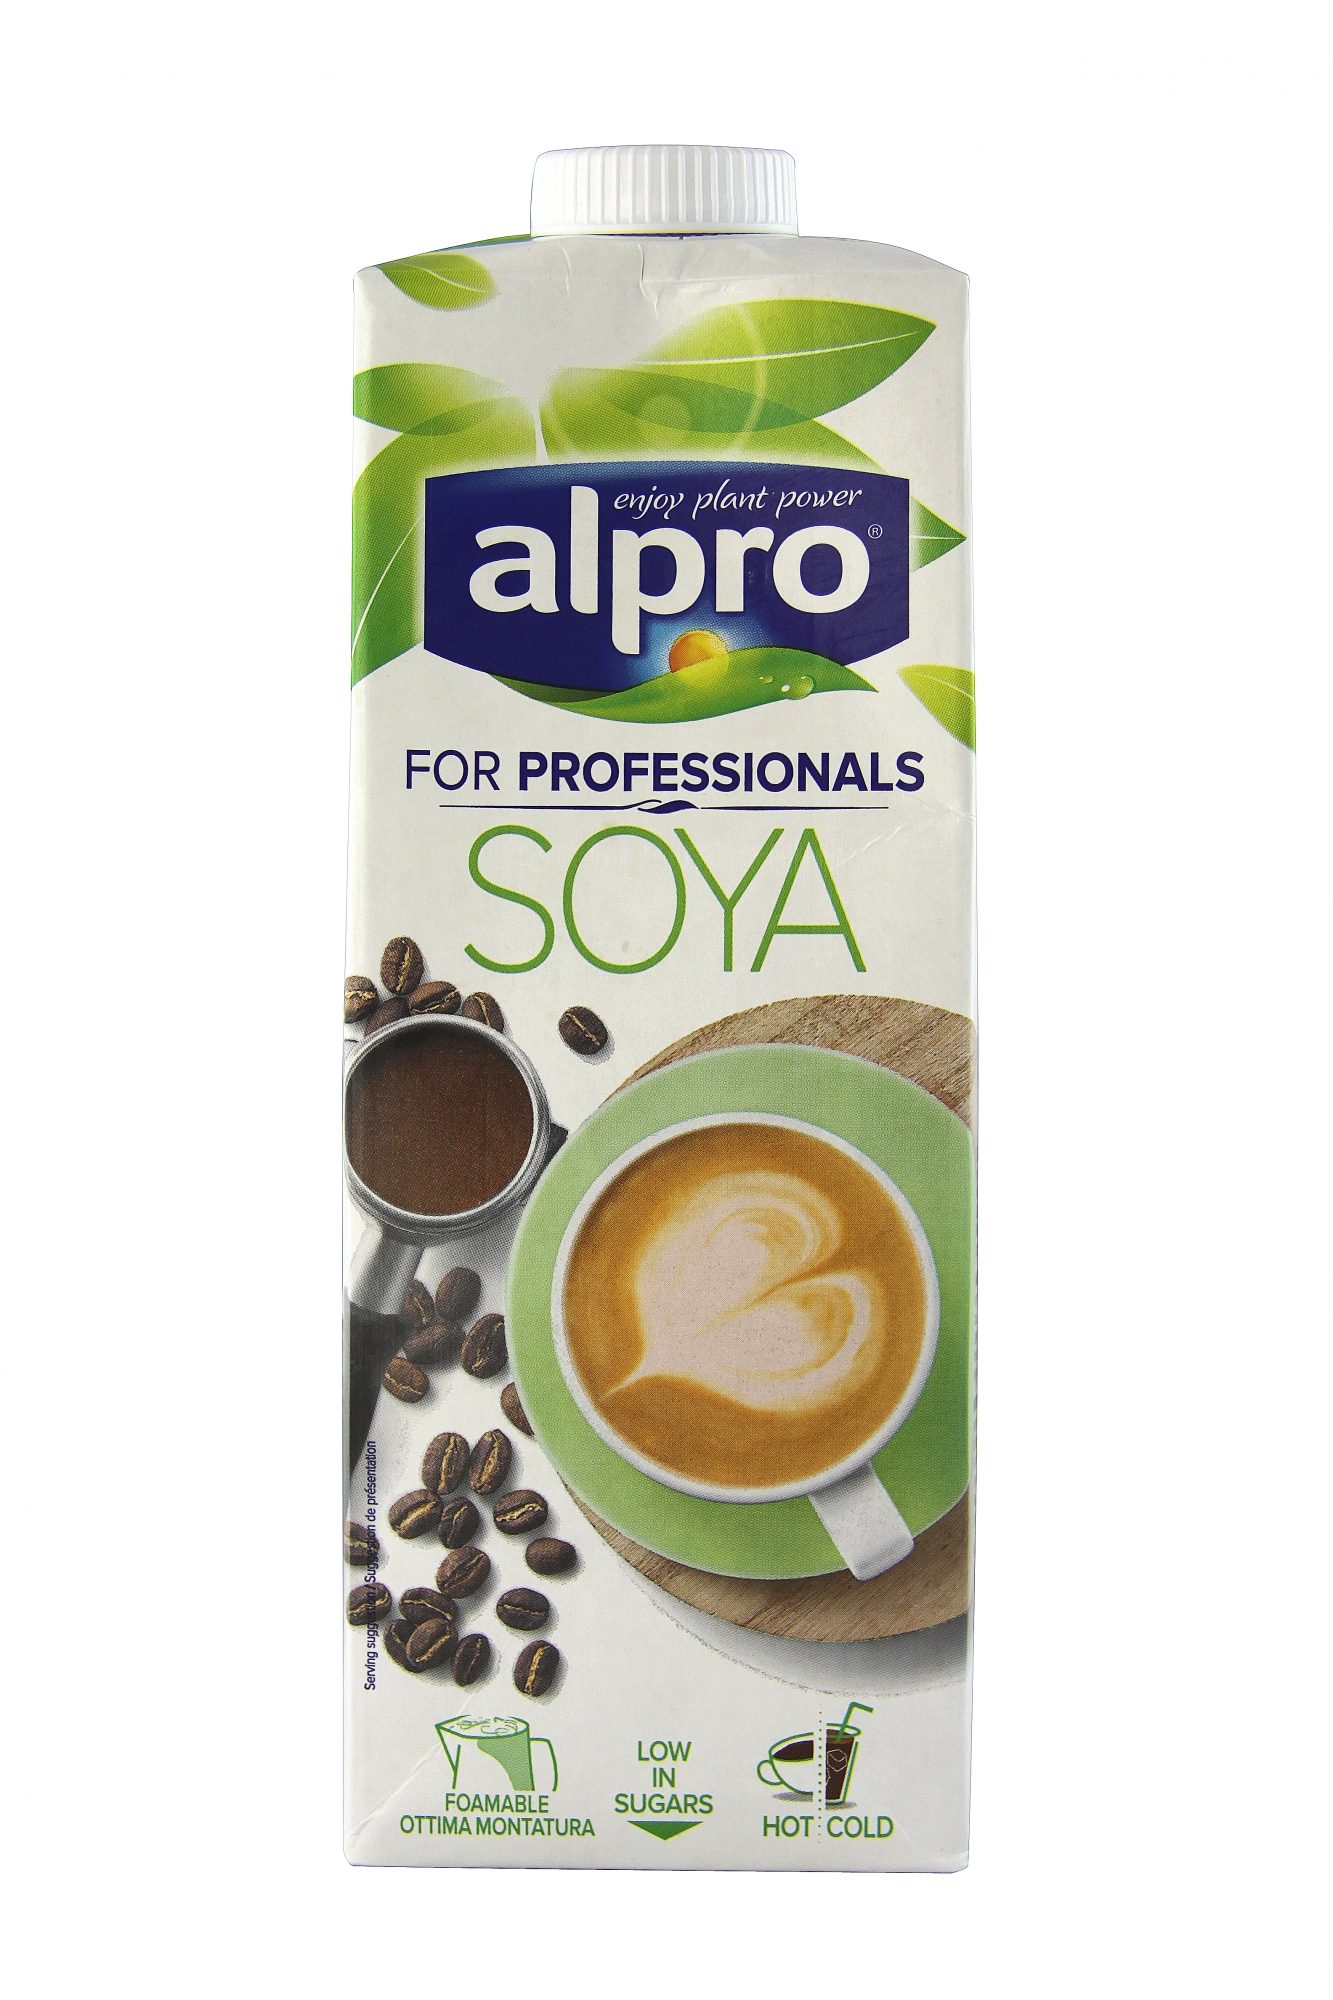 Alpro - For Professionals Soya